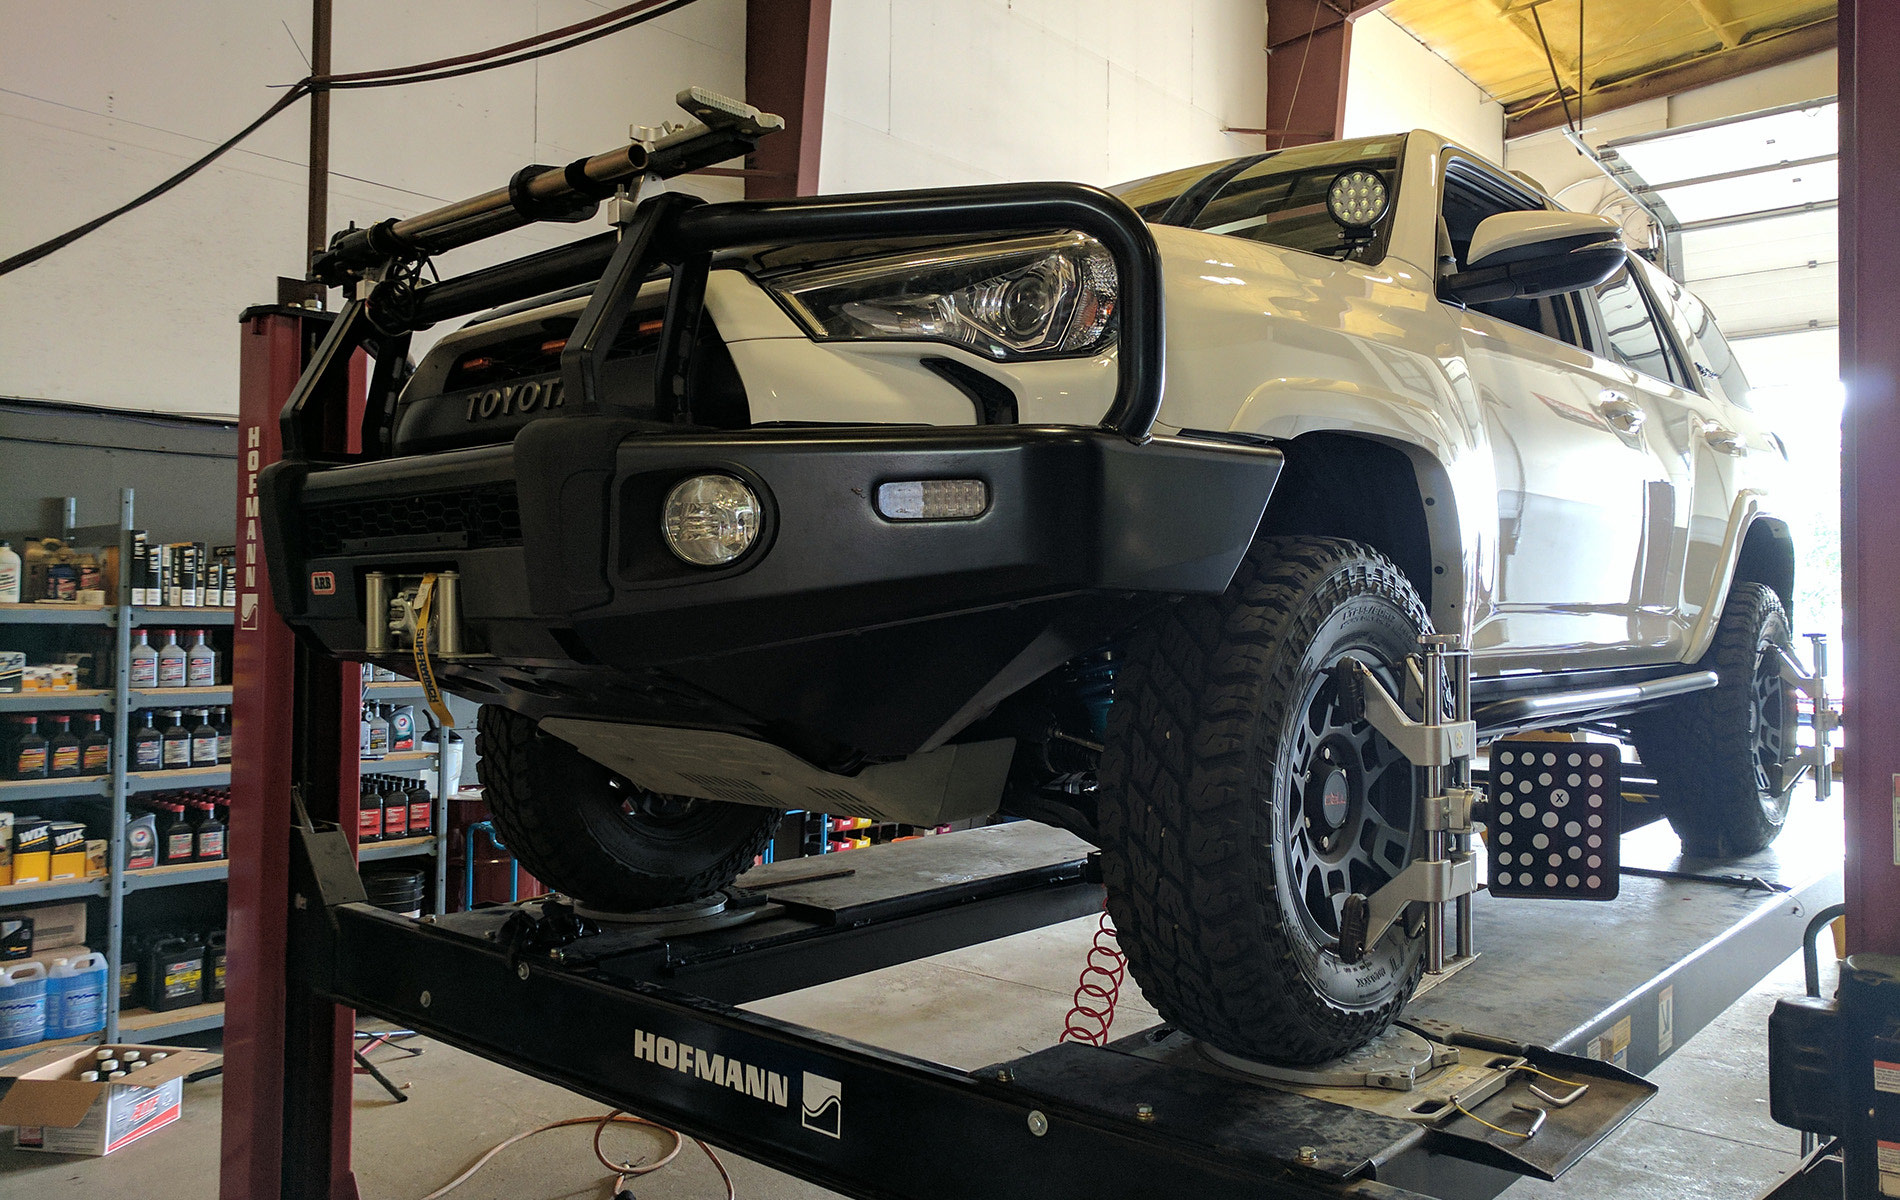 Edmonton's Premier Automotive Service and Performance Facility